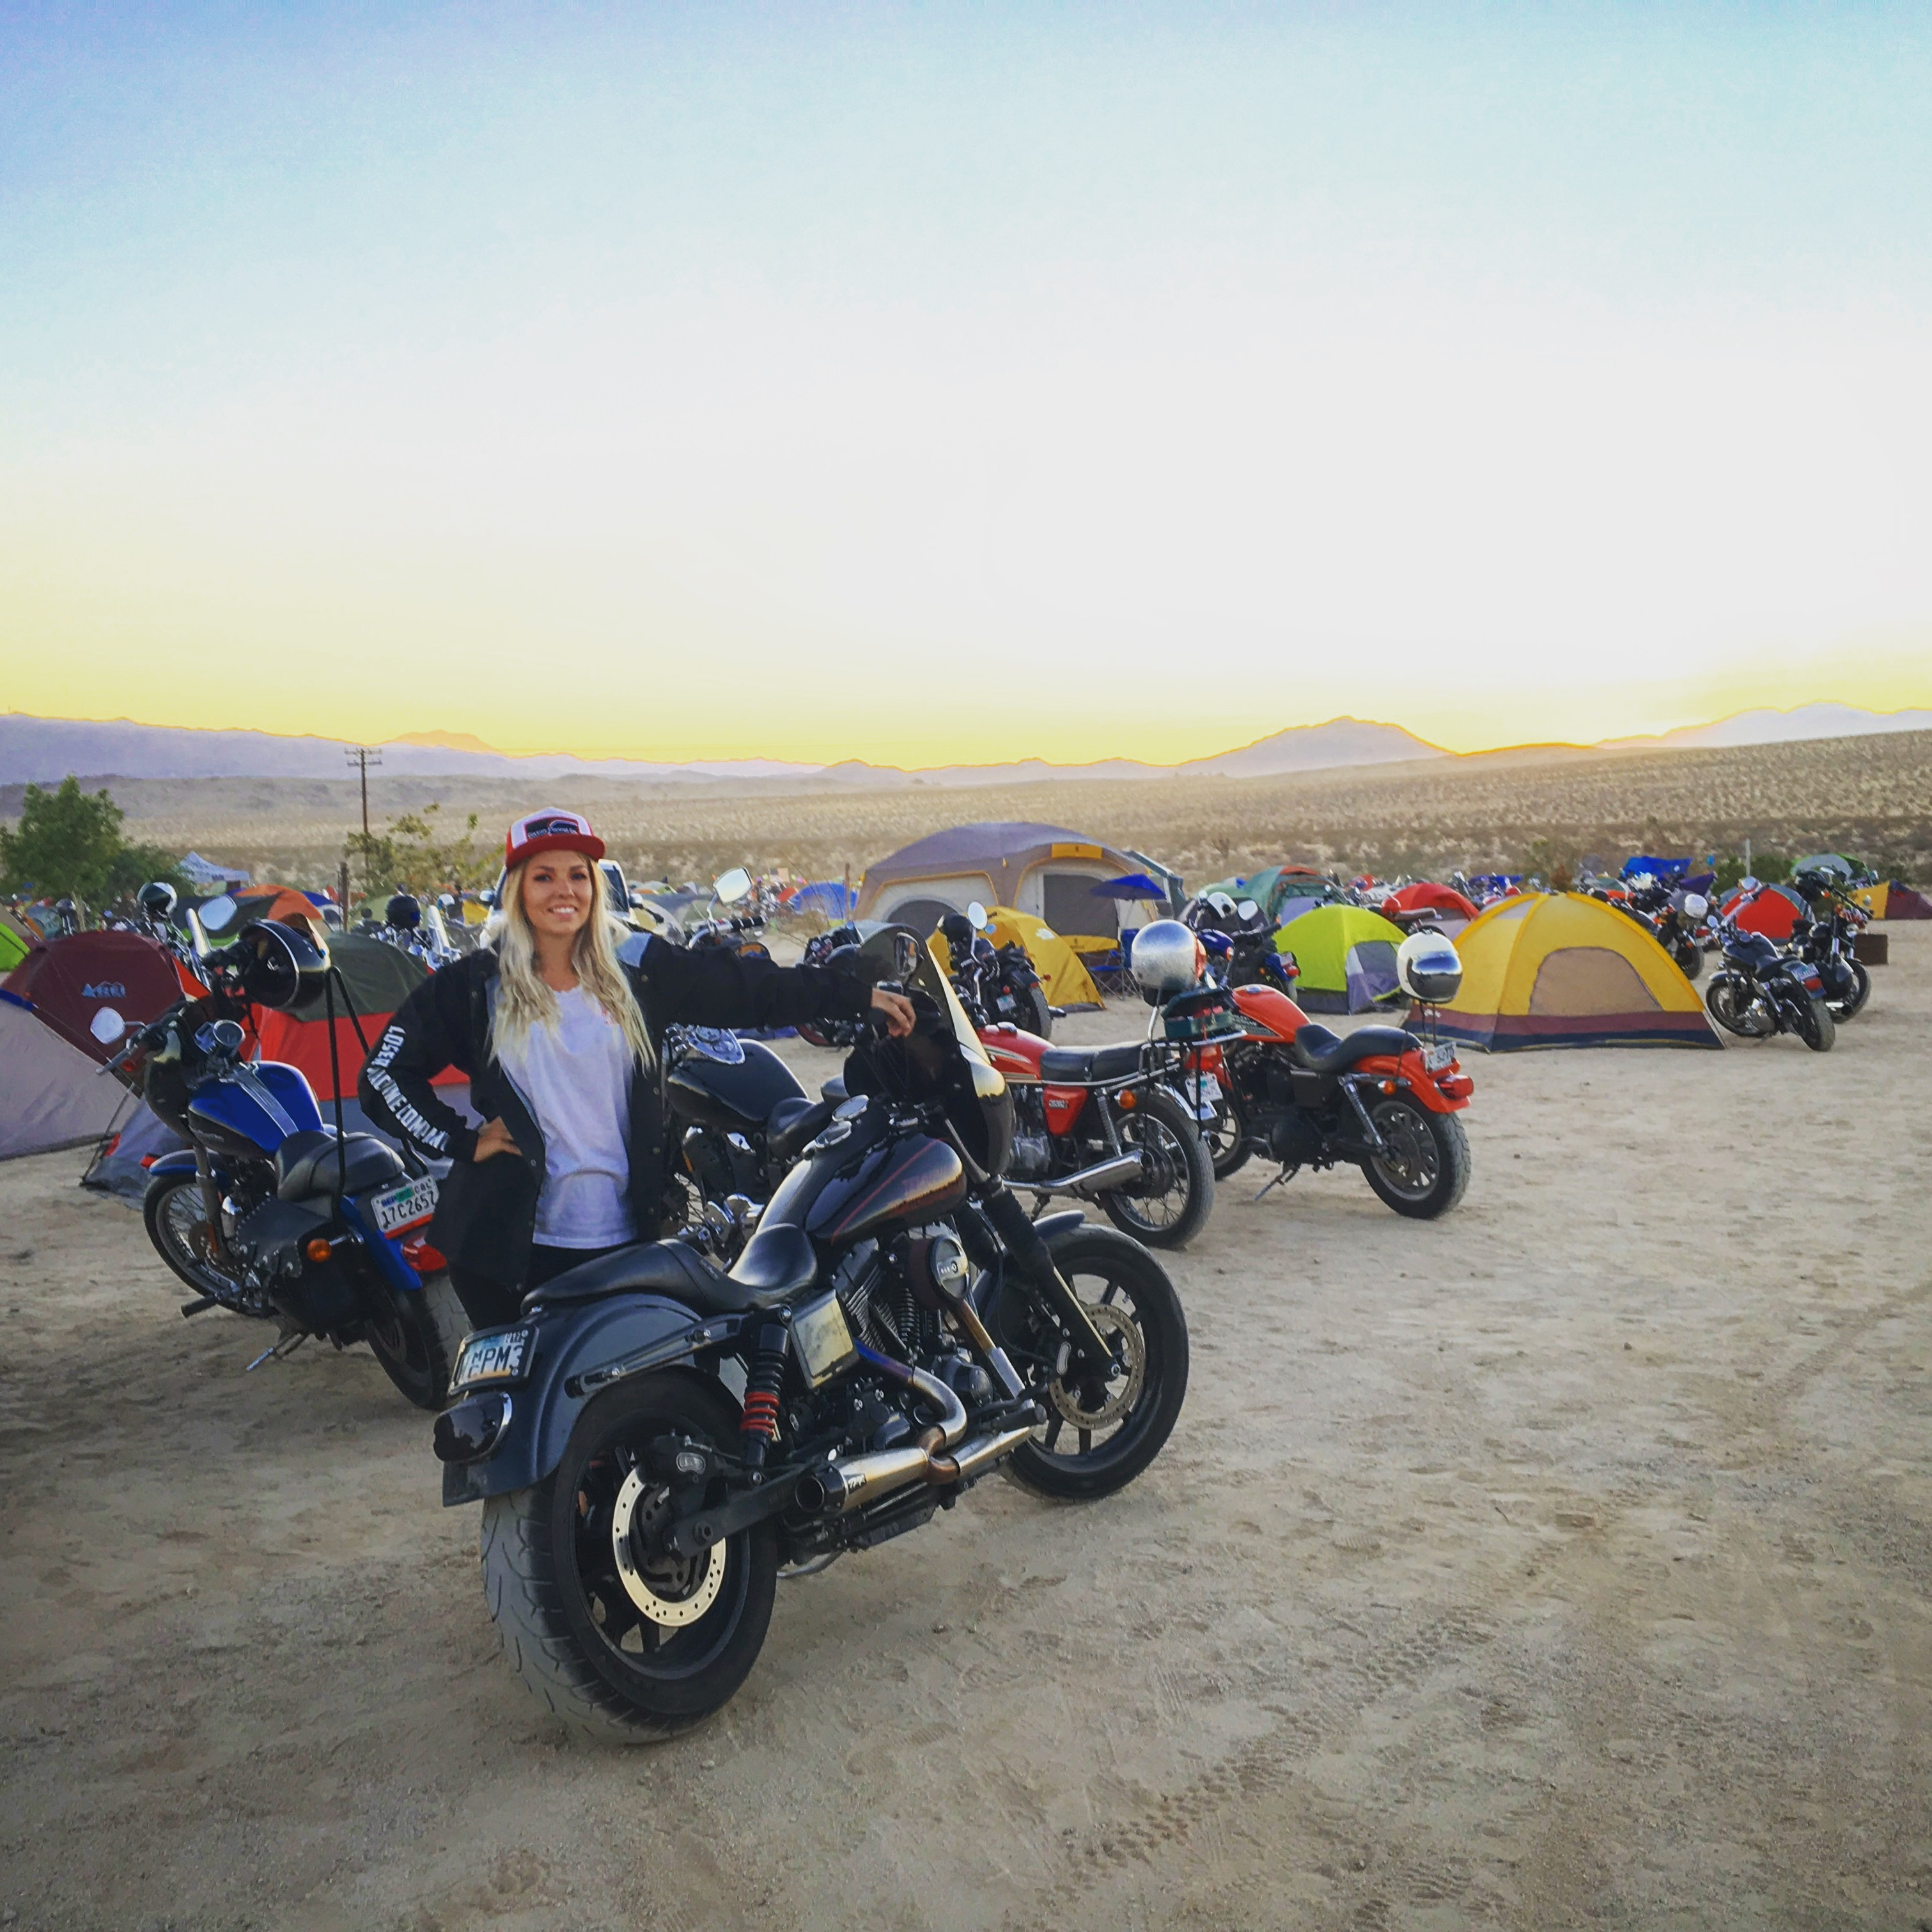 f4871bca975 Tips To Traveling Alone - From A Solo Rider